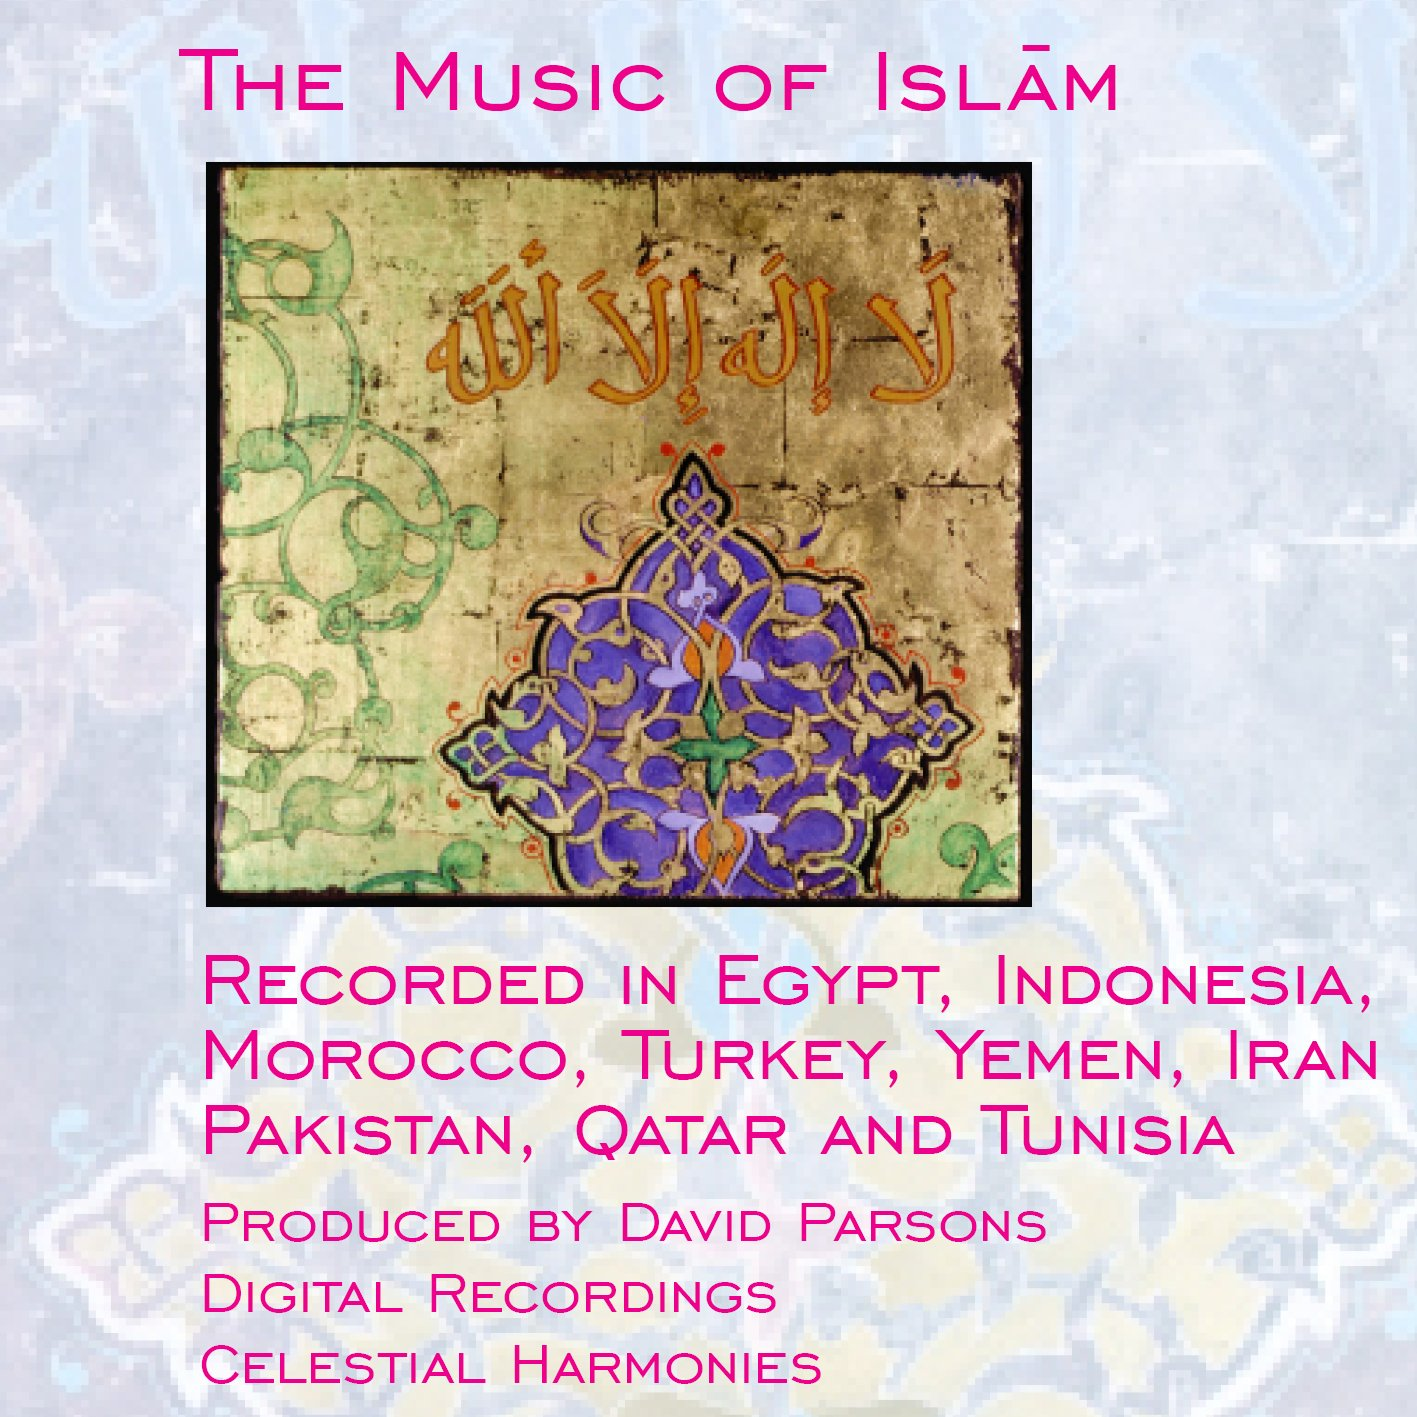 The Music of Islam